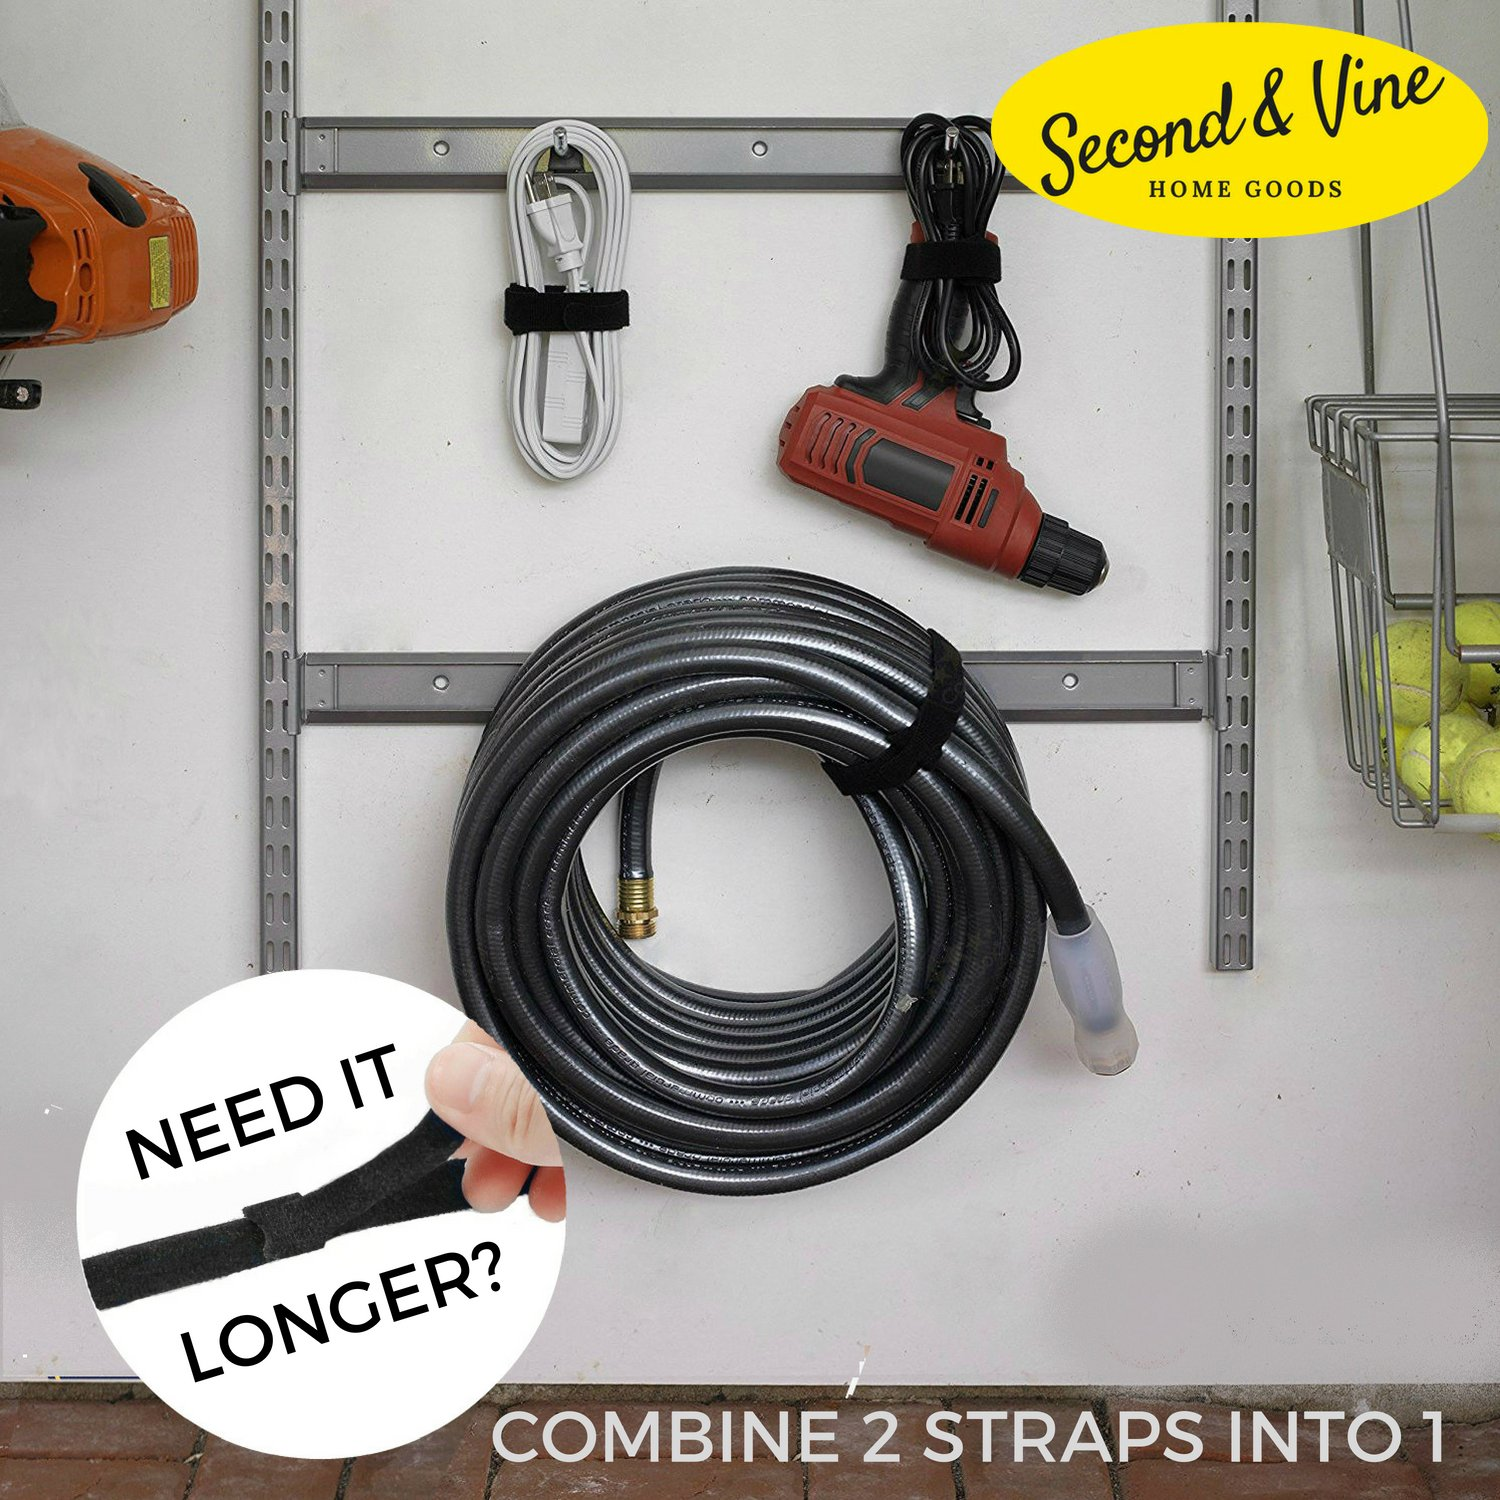 Reusable Cable Ties - Electronics Wire Organizer Cord - Adjustable Hook and Loop - Fabric Zip Ties - 8'' x 0.5'' - Home Office Garage Workshop (100) by Second & Vine (Image #4)